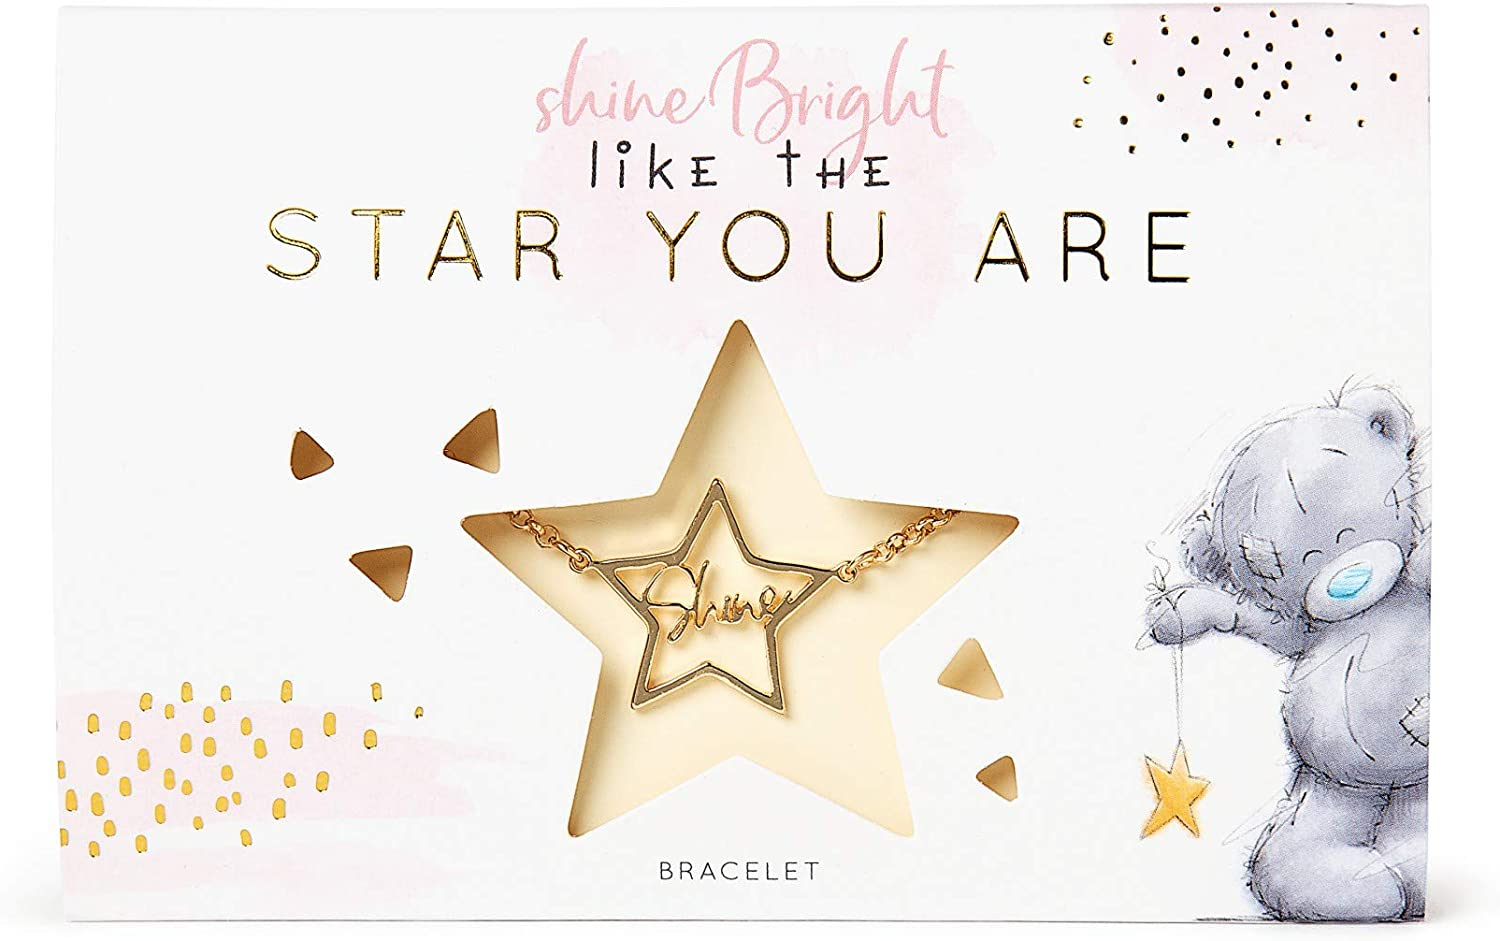 silver or rose gold Nylon bracelet with star pendant to \u00bbMerry Christmas\u00ab card stainless steel in the colors gold